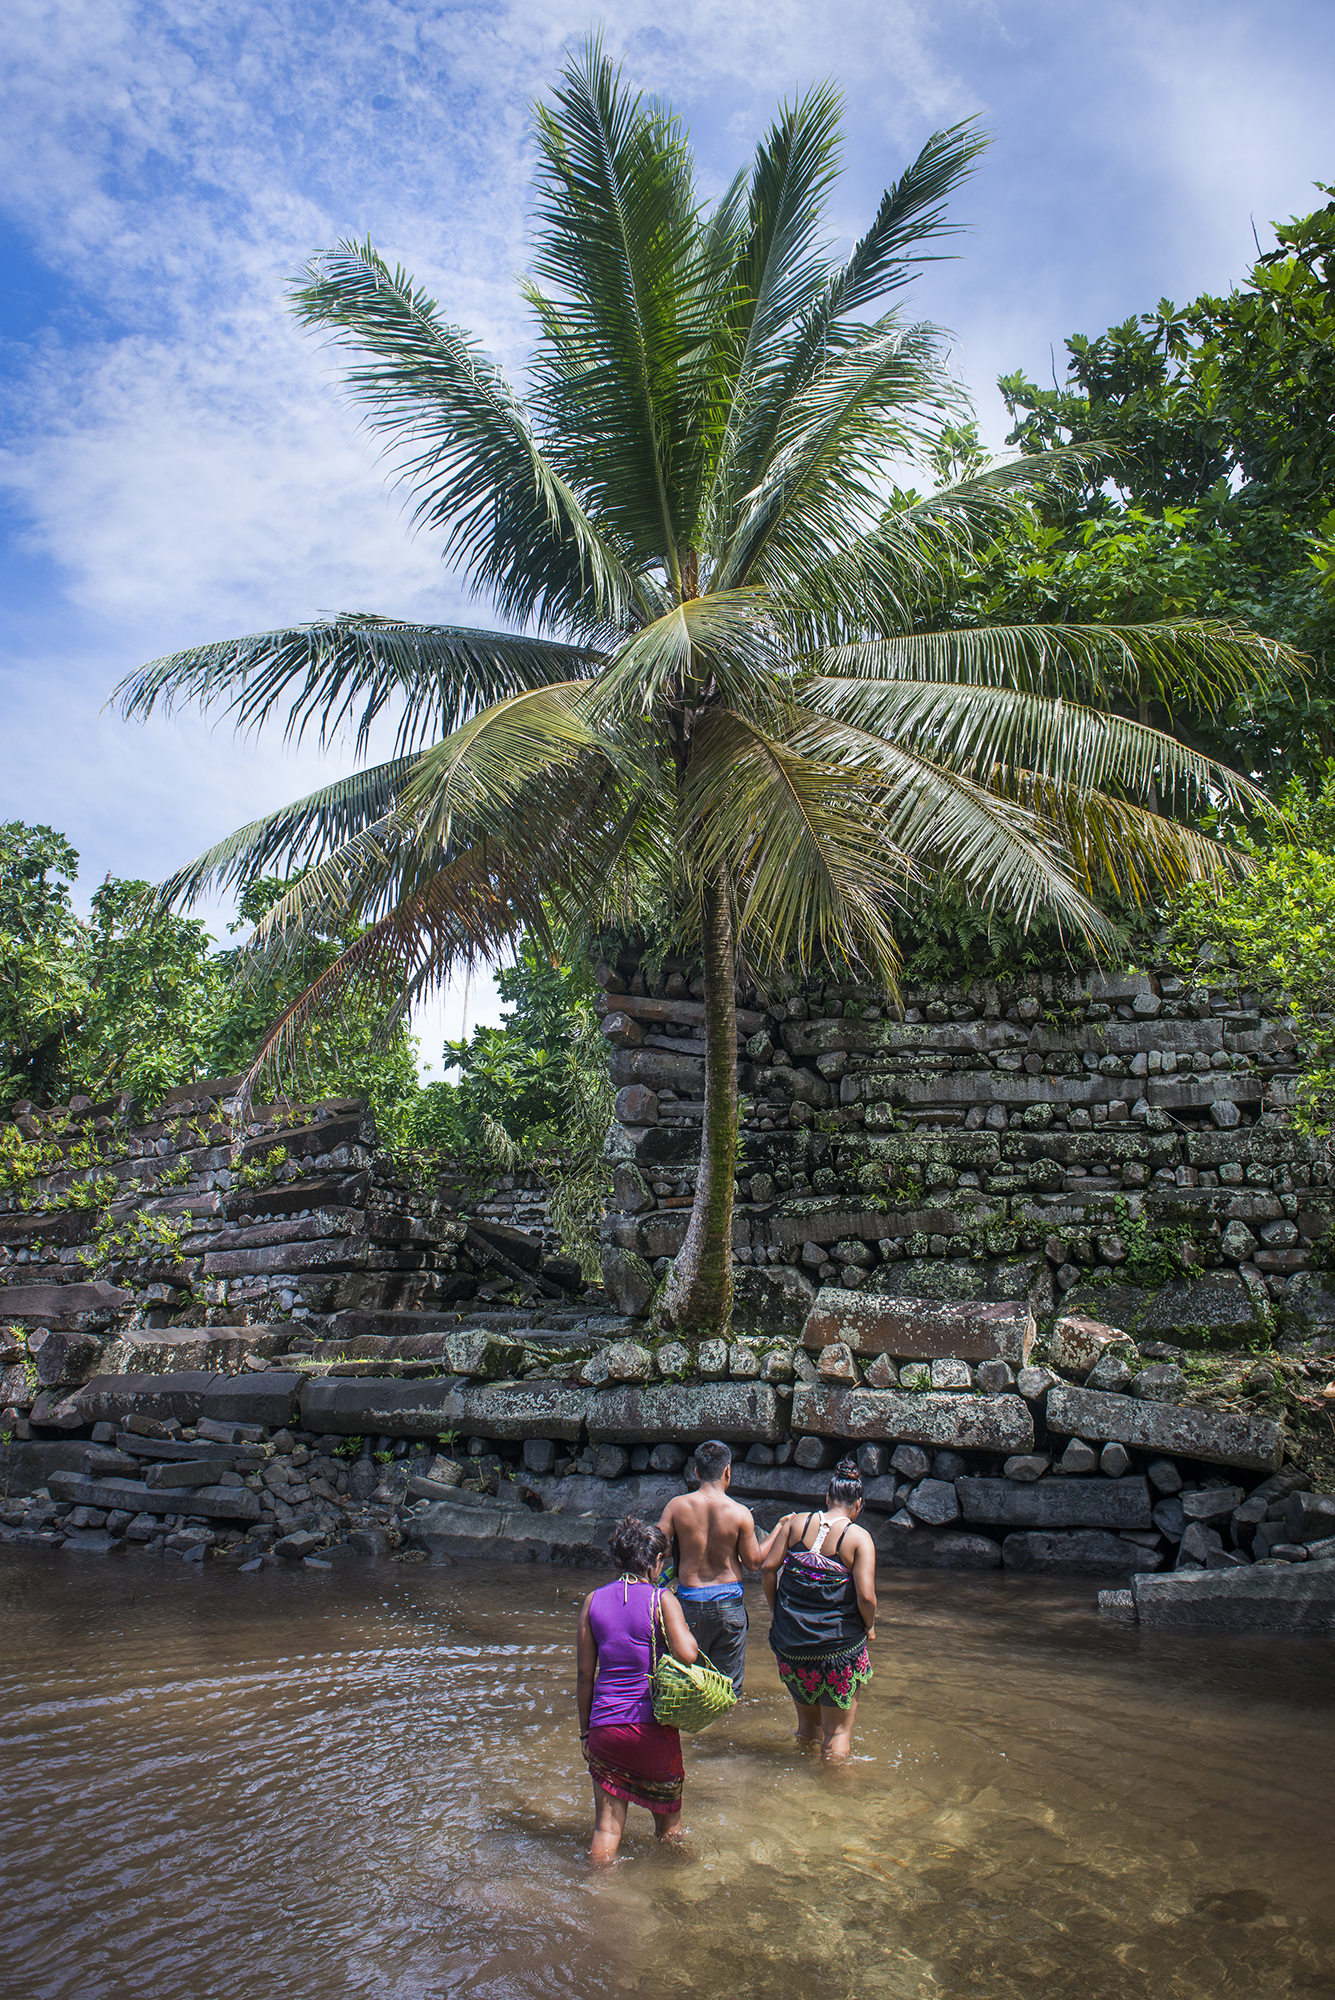 <p>For a small fee, locals will ferryvisitors across the waterway that separates Nan Madol from Pohnpei. Or, you can take of your shoes and roll up your pants or skirt and wade across.</p>